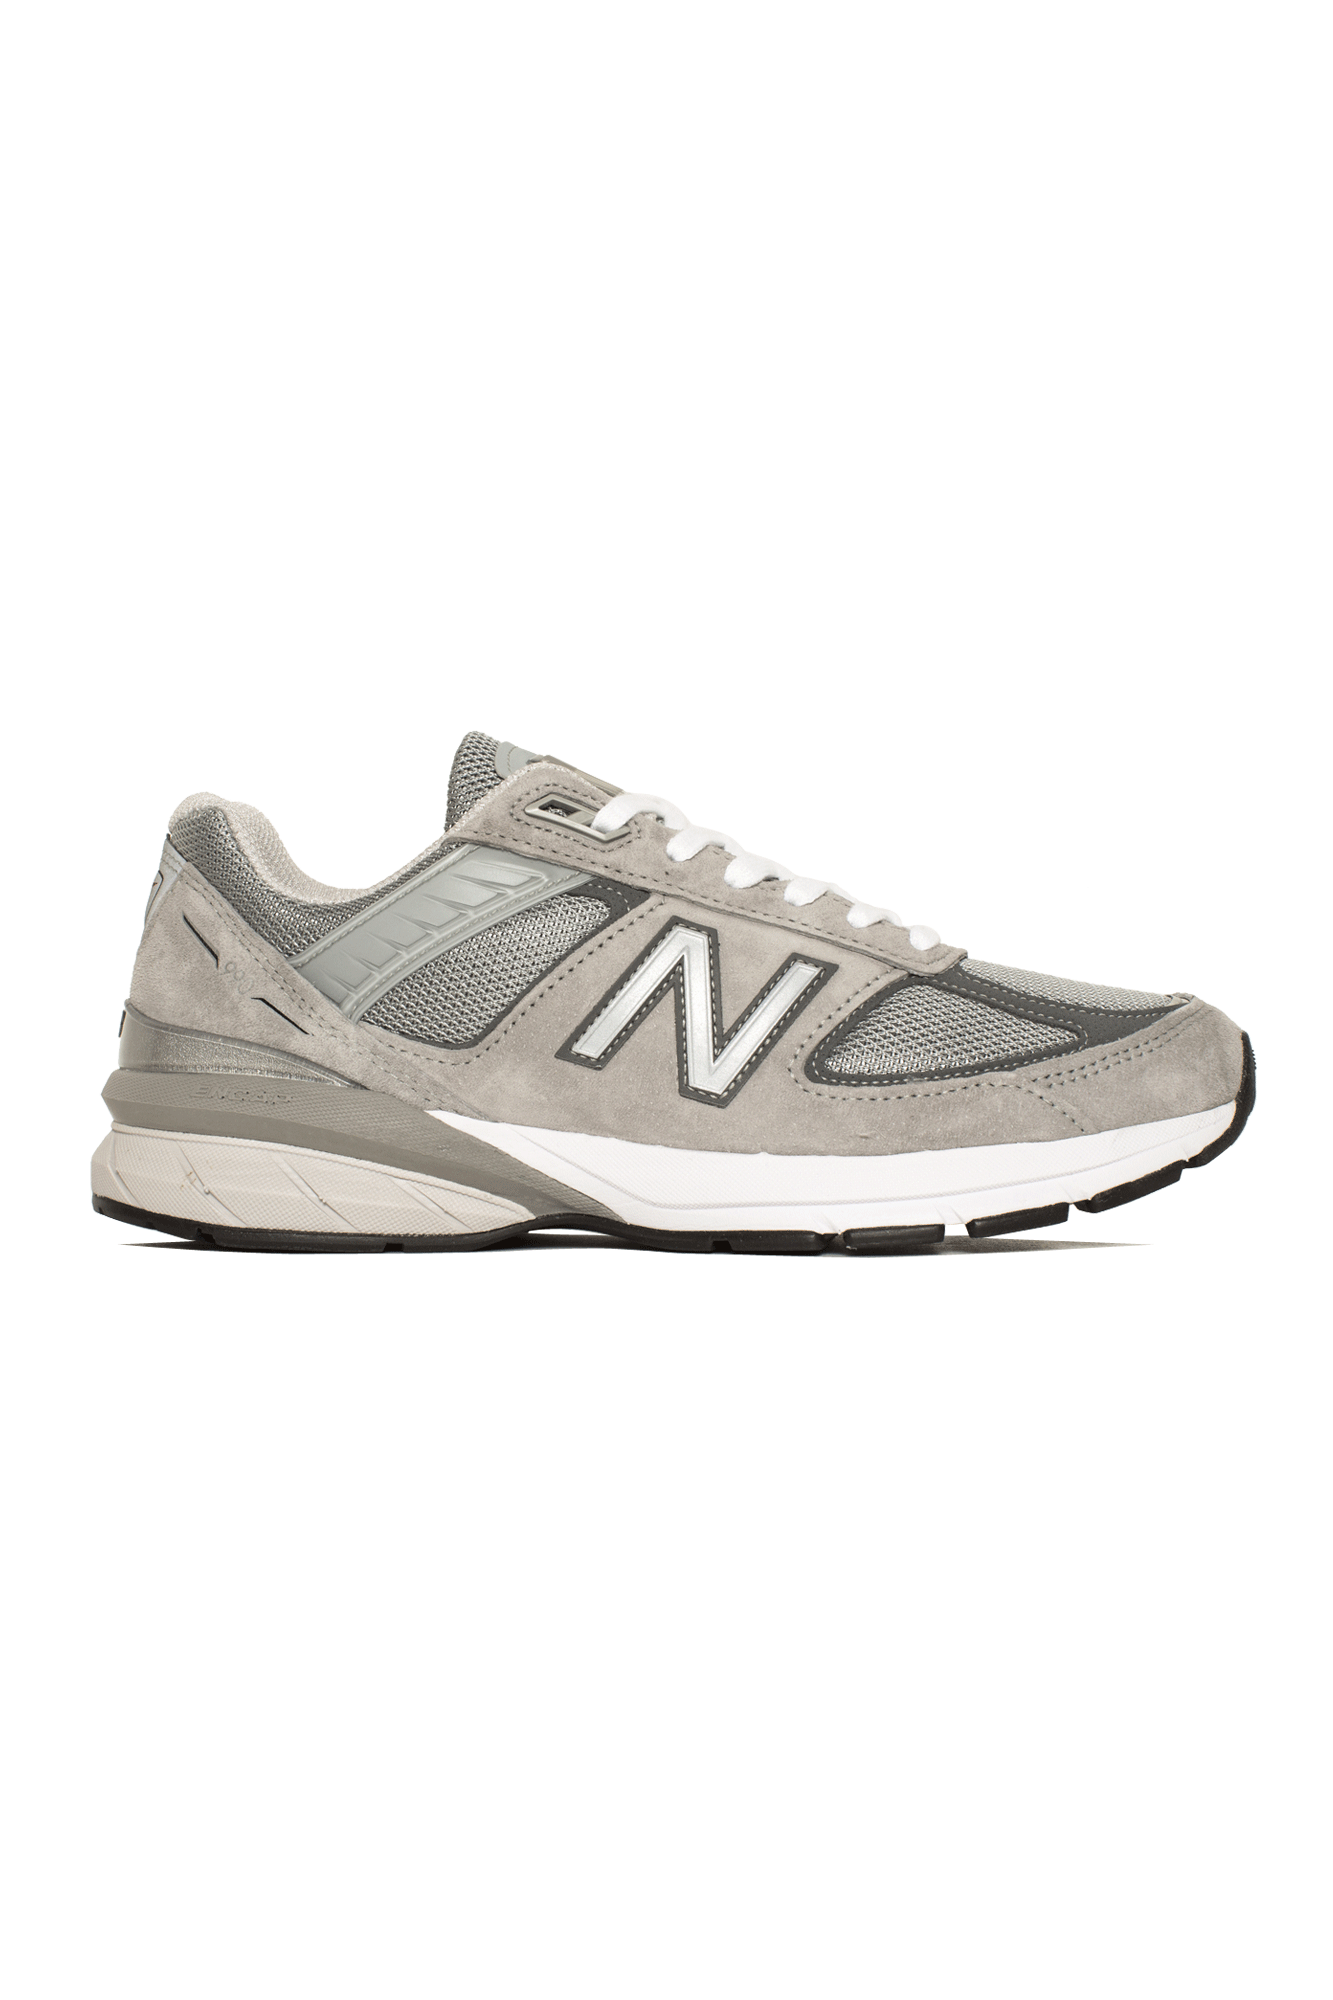 New Balance Sneakers 990 Grigio NBM990#000#GL5#7,5 - One Block Down